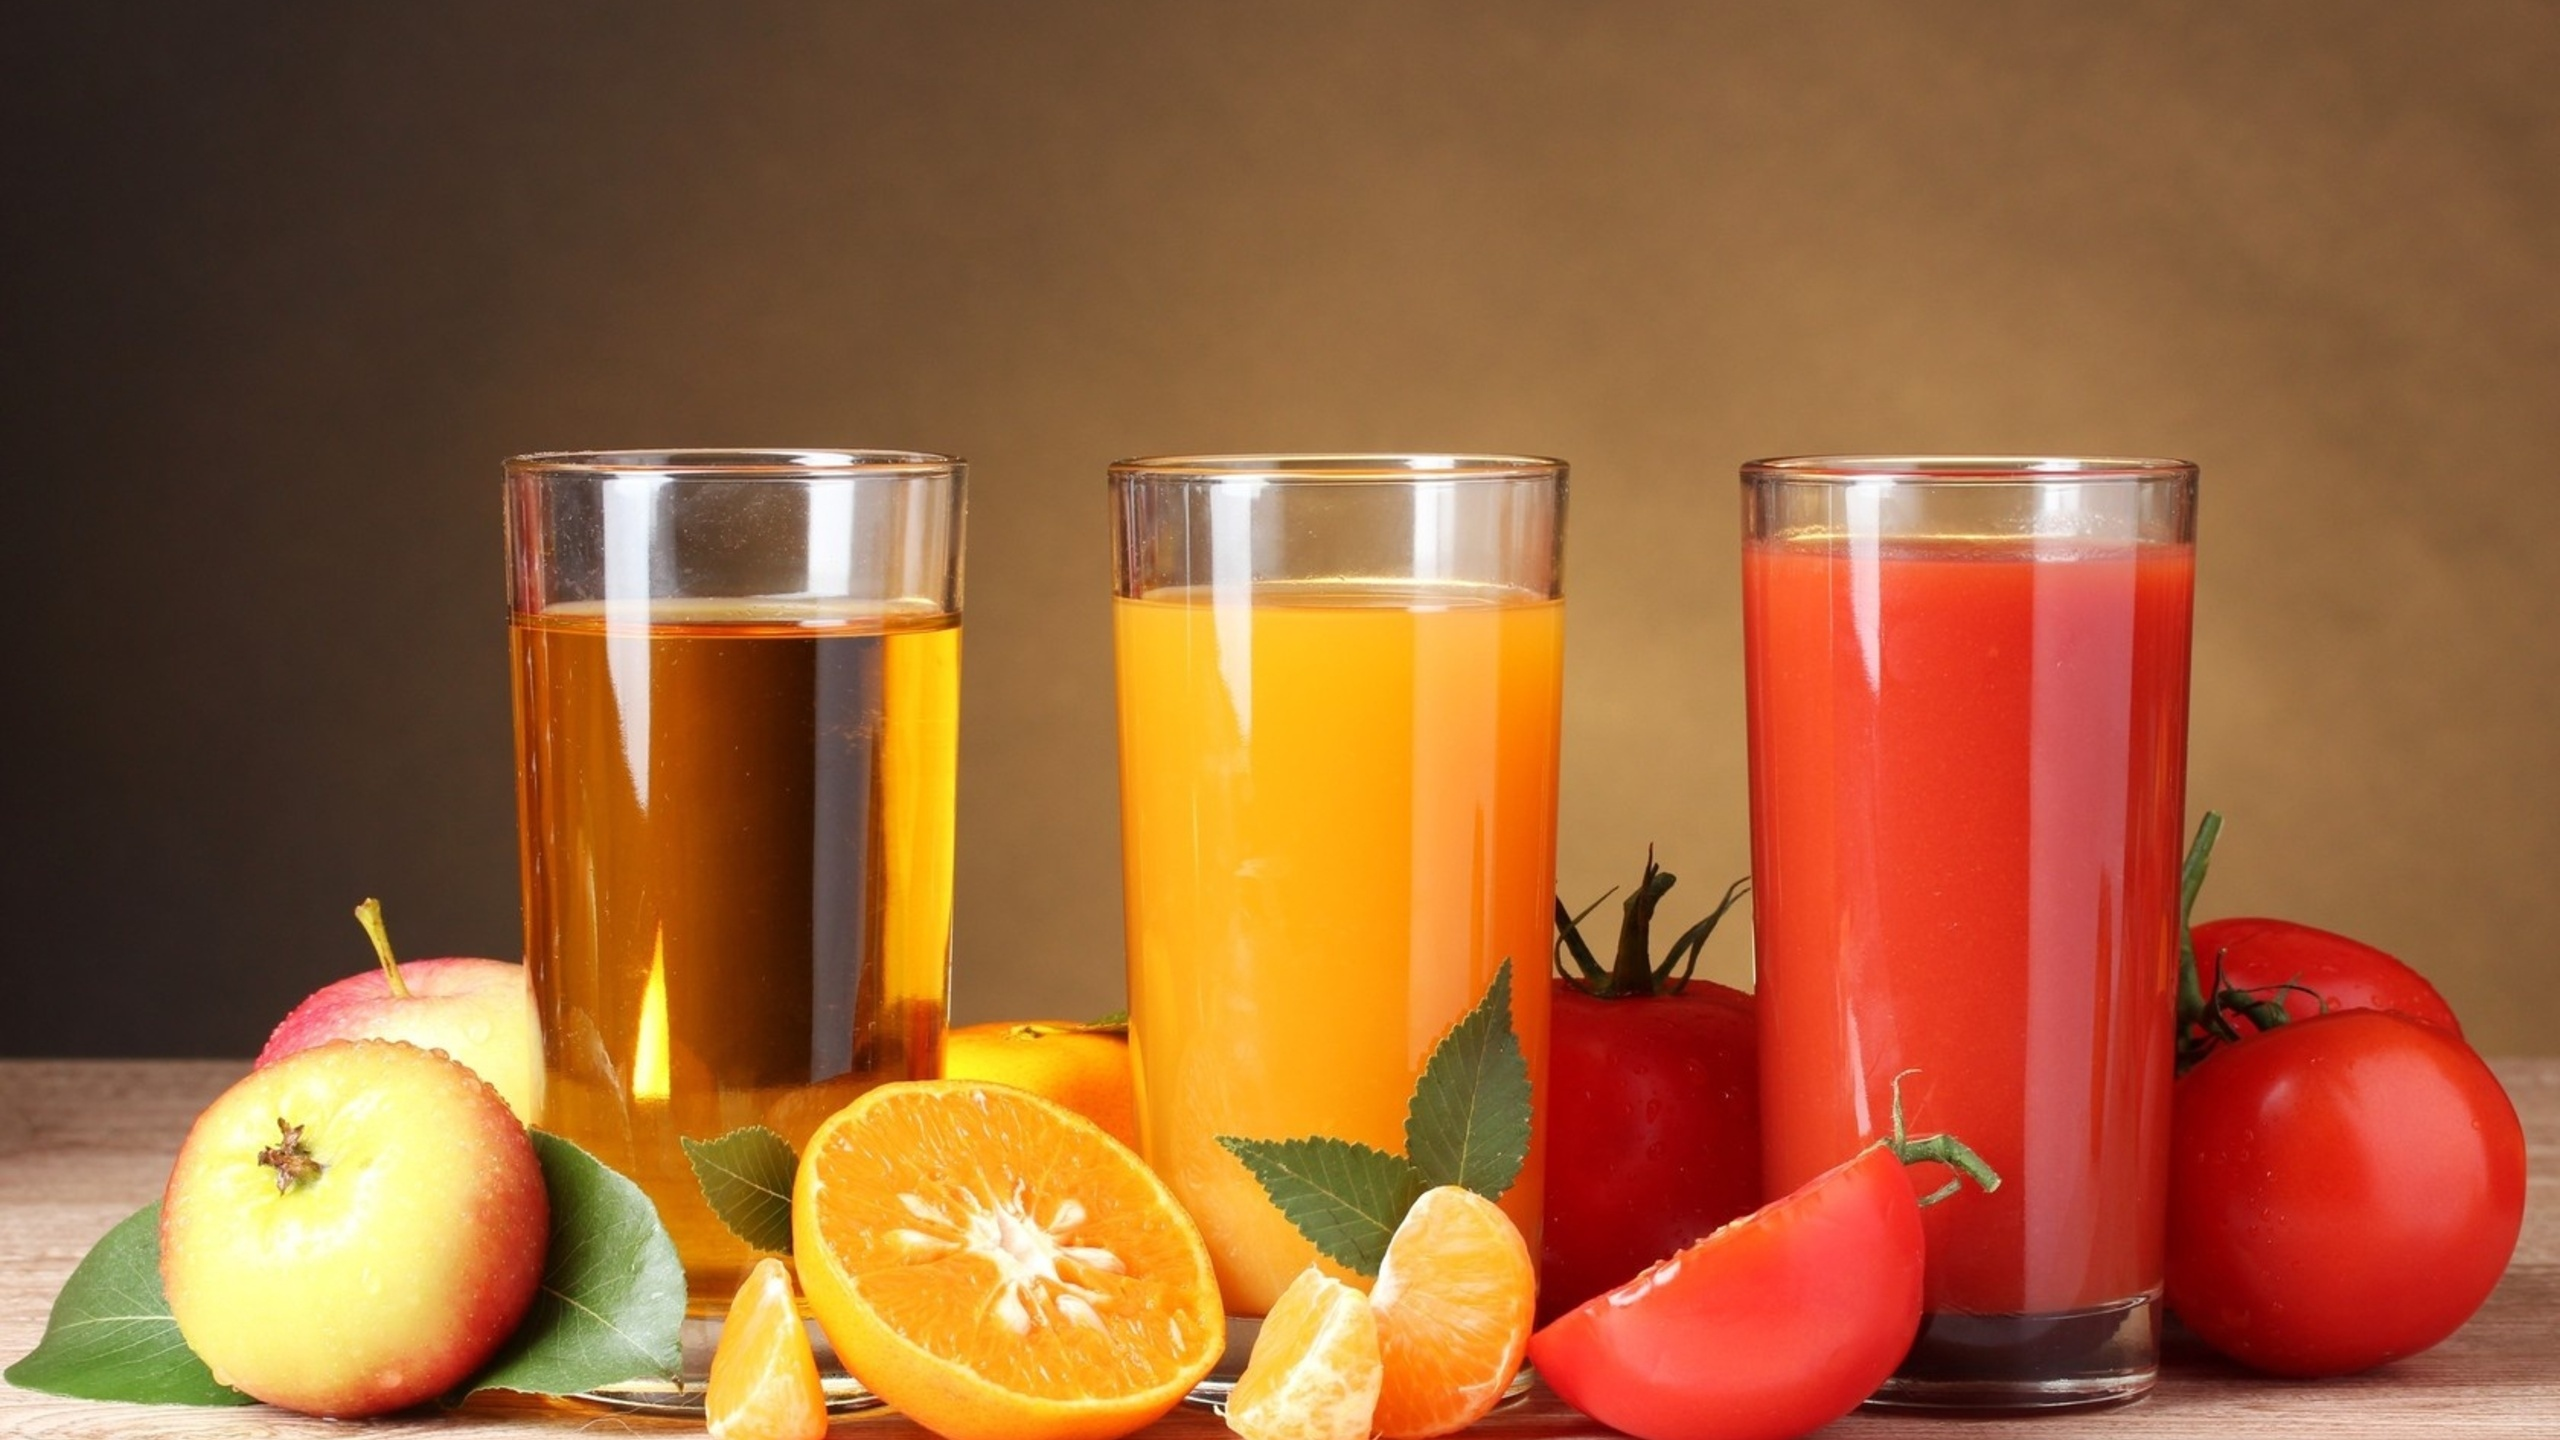 835672 Juice Wallpapers Food and Drink Wallpapers Gallery   PC 2560x1440